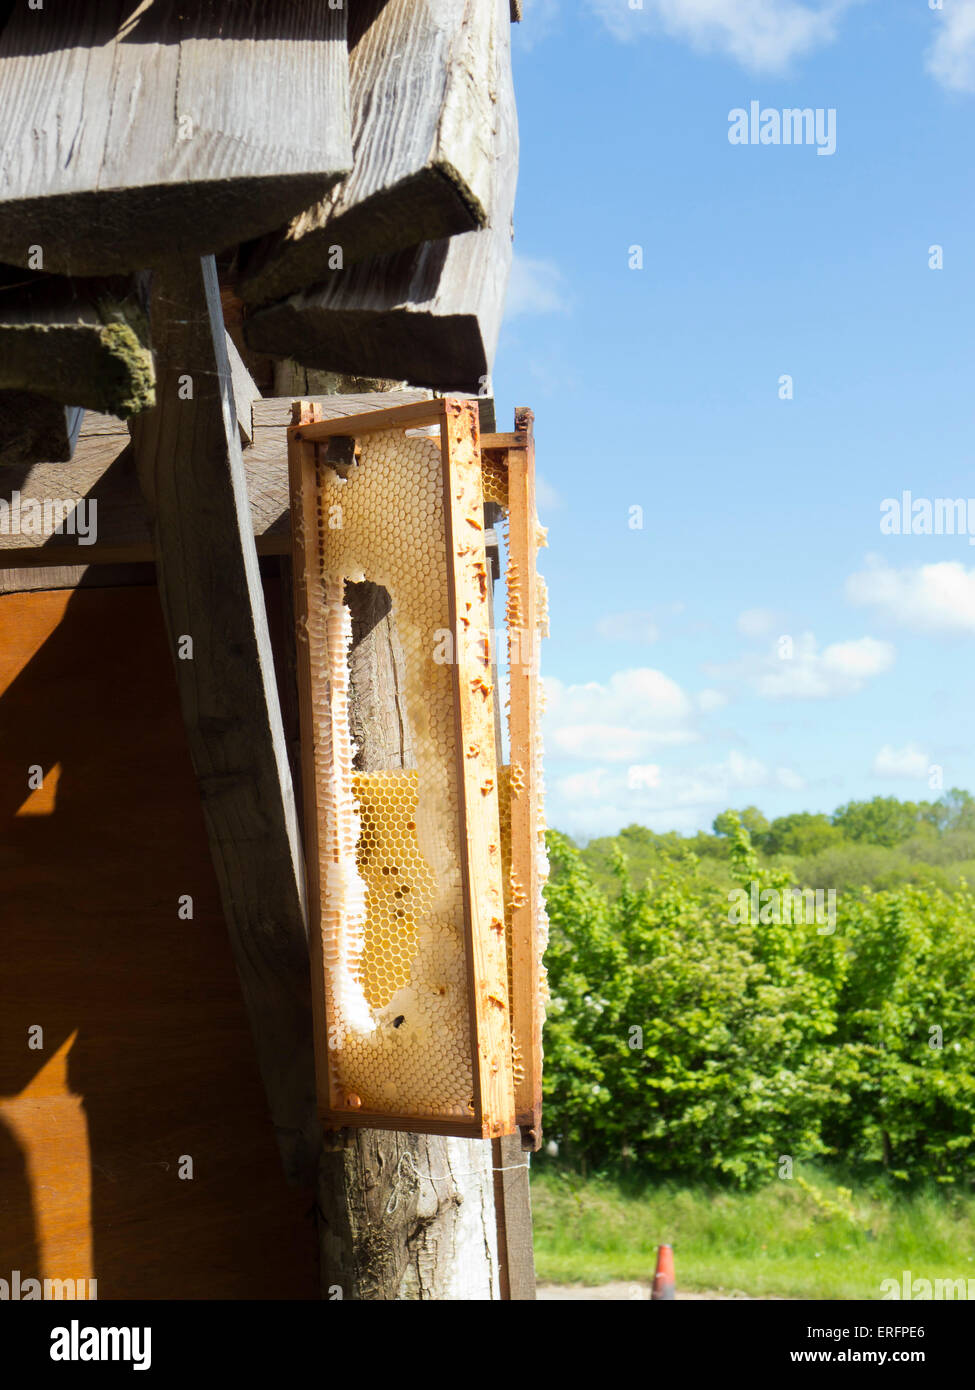 Beehive honeycombs hung up for bees to recollect unharvestable honey - Stock Image